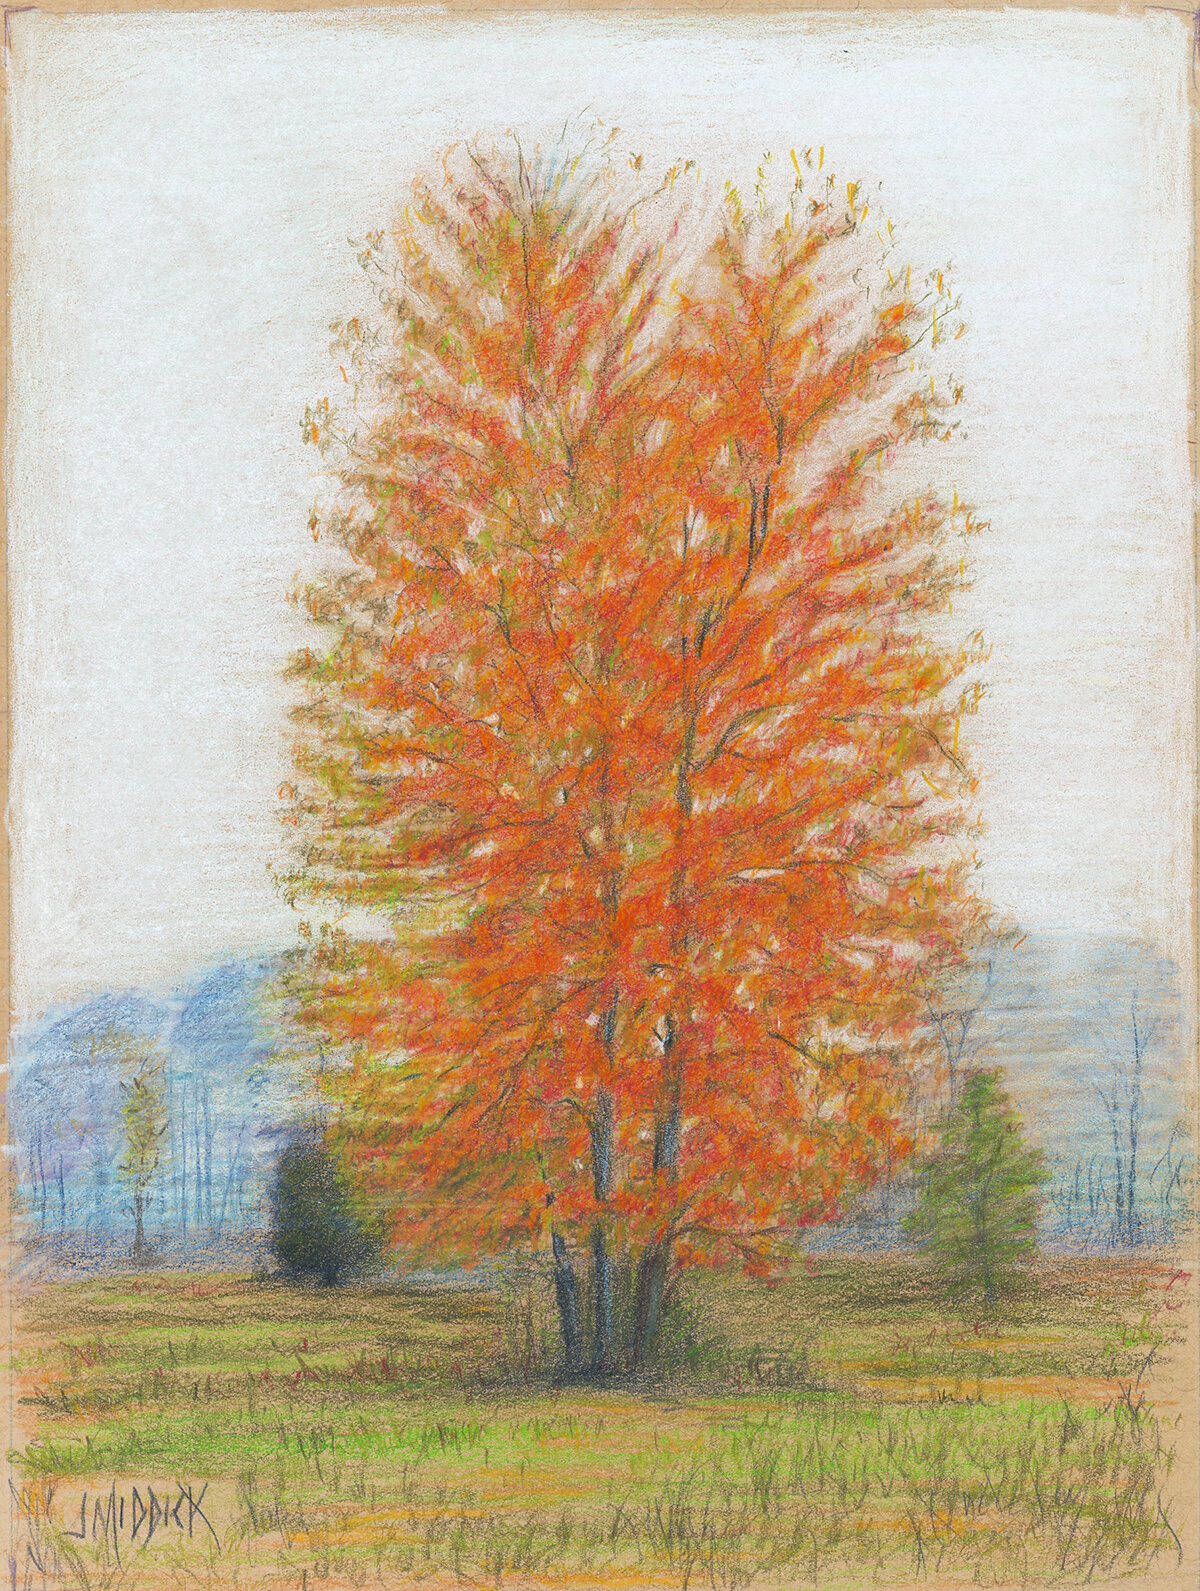 Autumn Tree Drawing in Colored Pencil.jpg